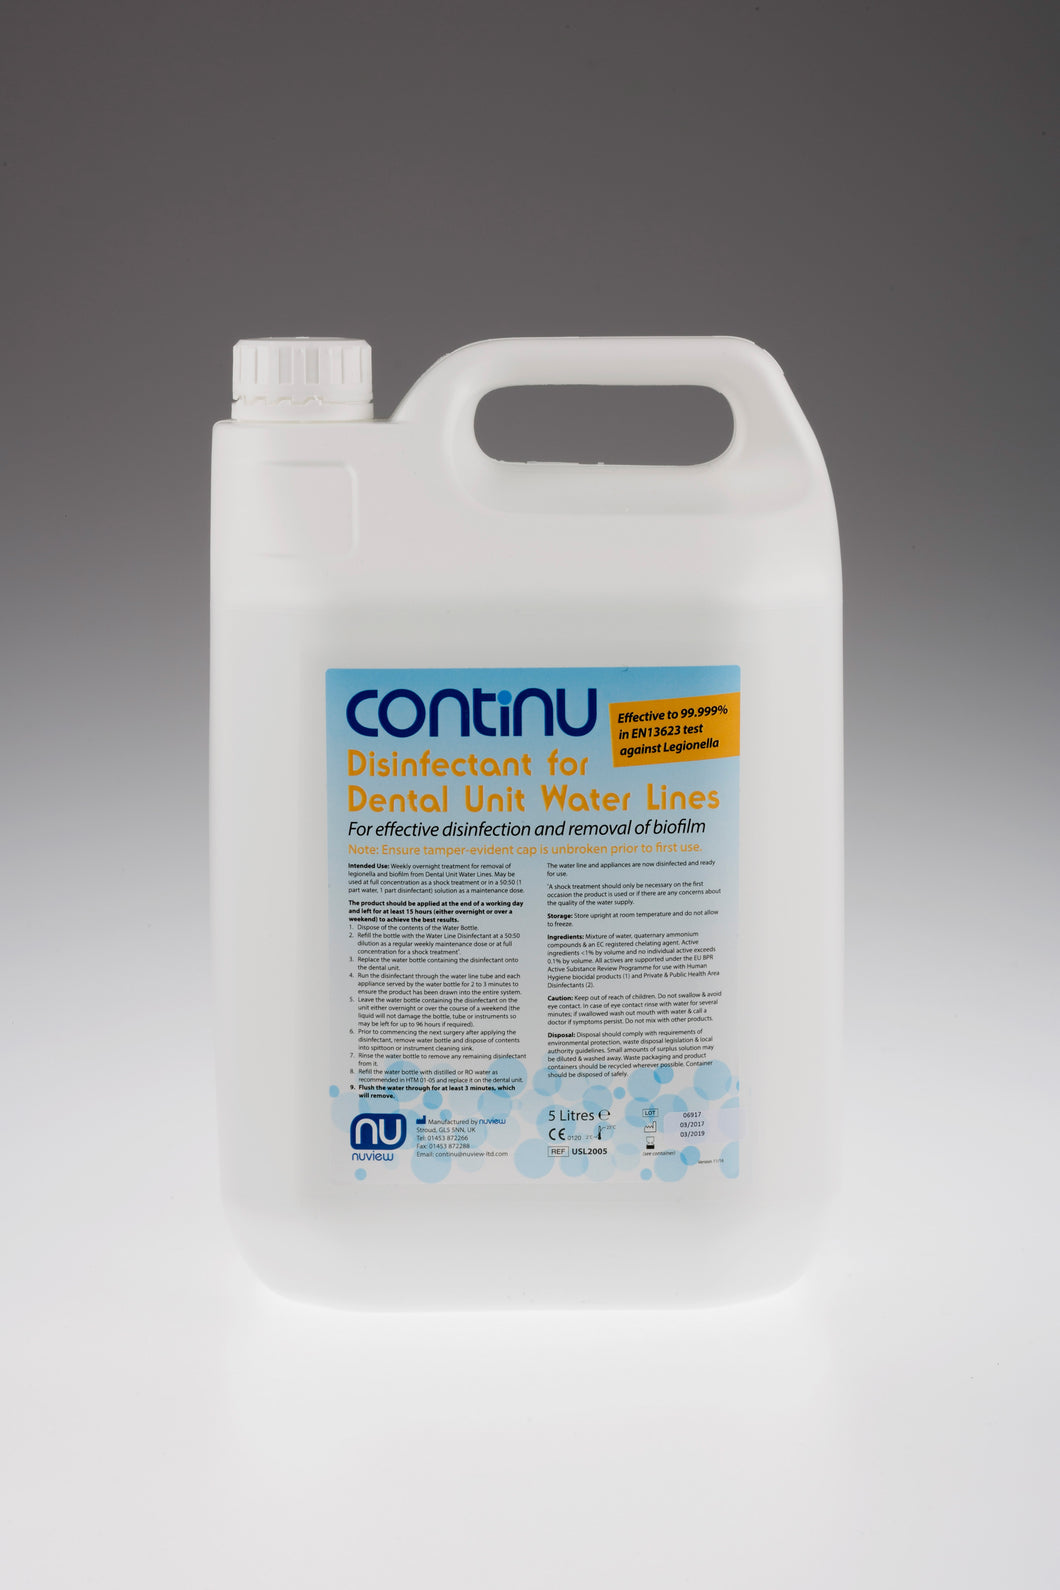 CONTINU Disinfectant for Dental Unit Water Lines 5L - 10 weeks worth